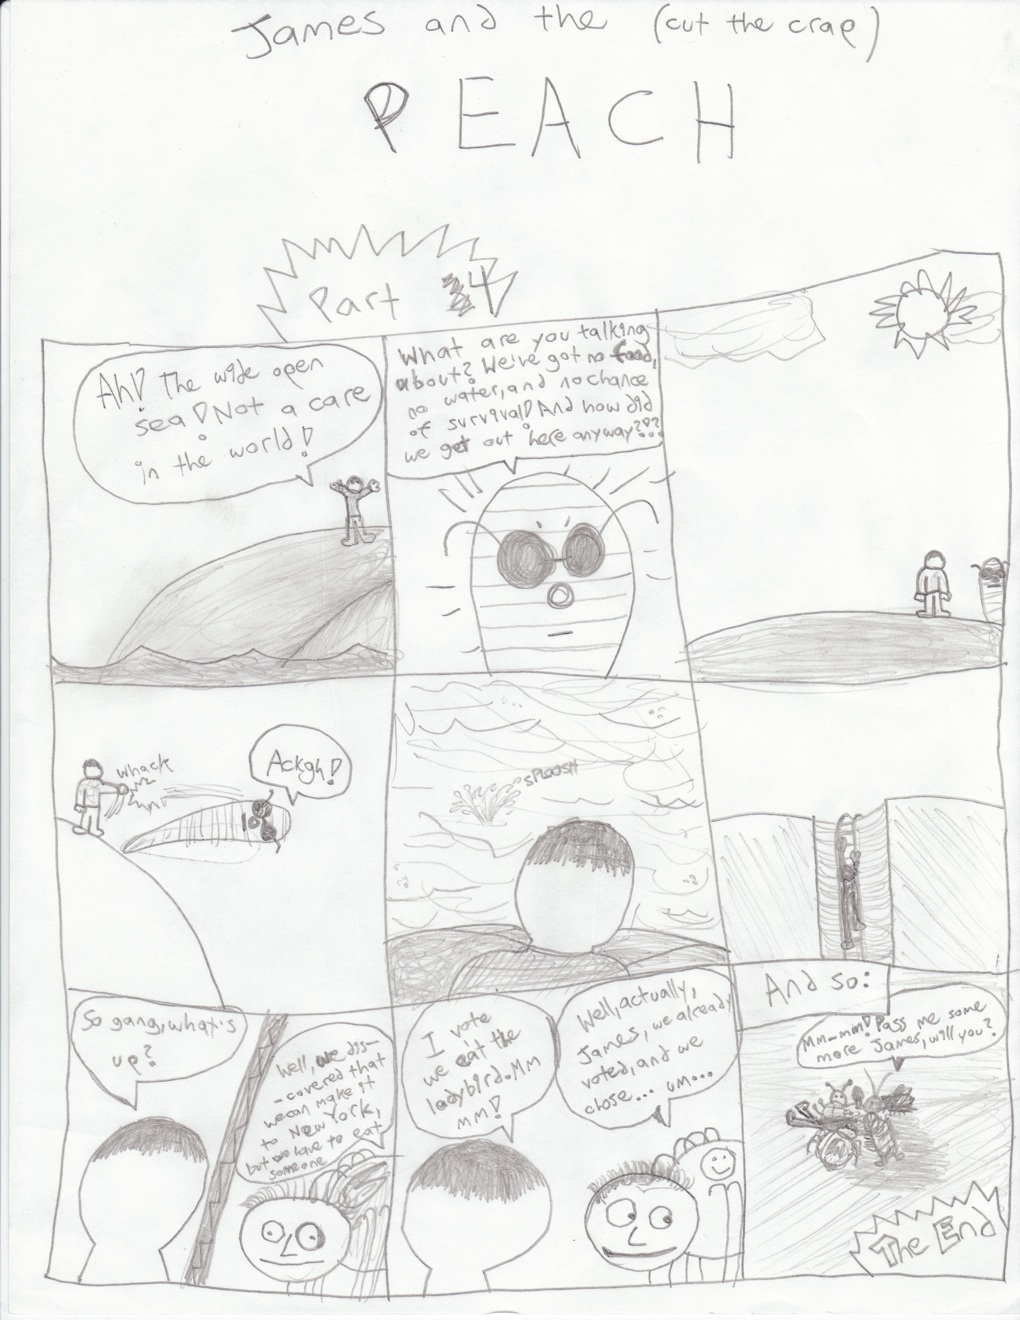 1020x1320 James And The Giant Peach Doodles And Doodads